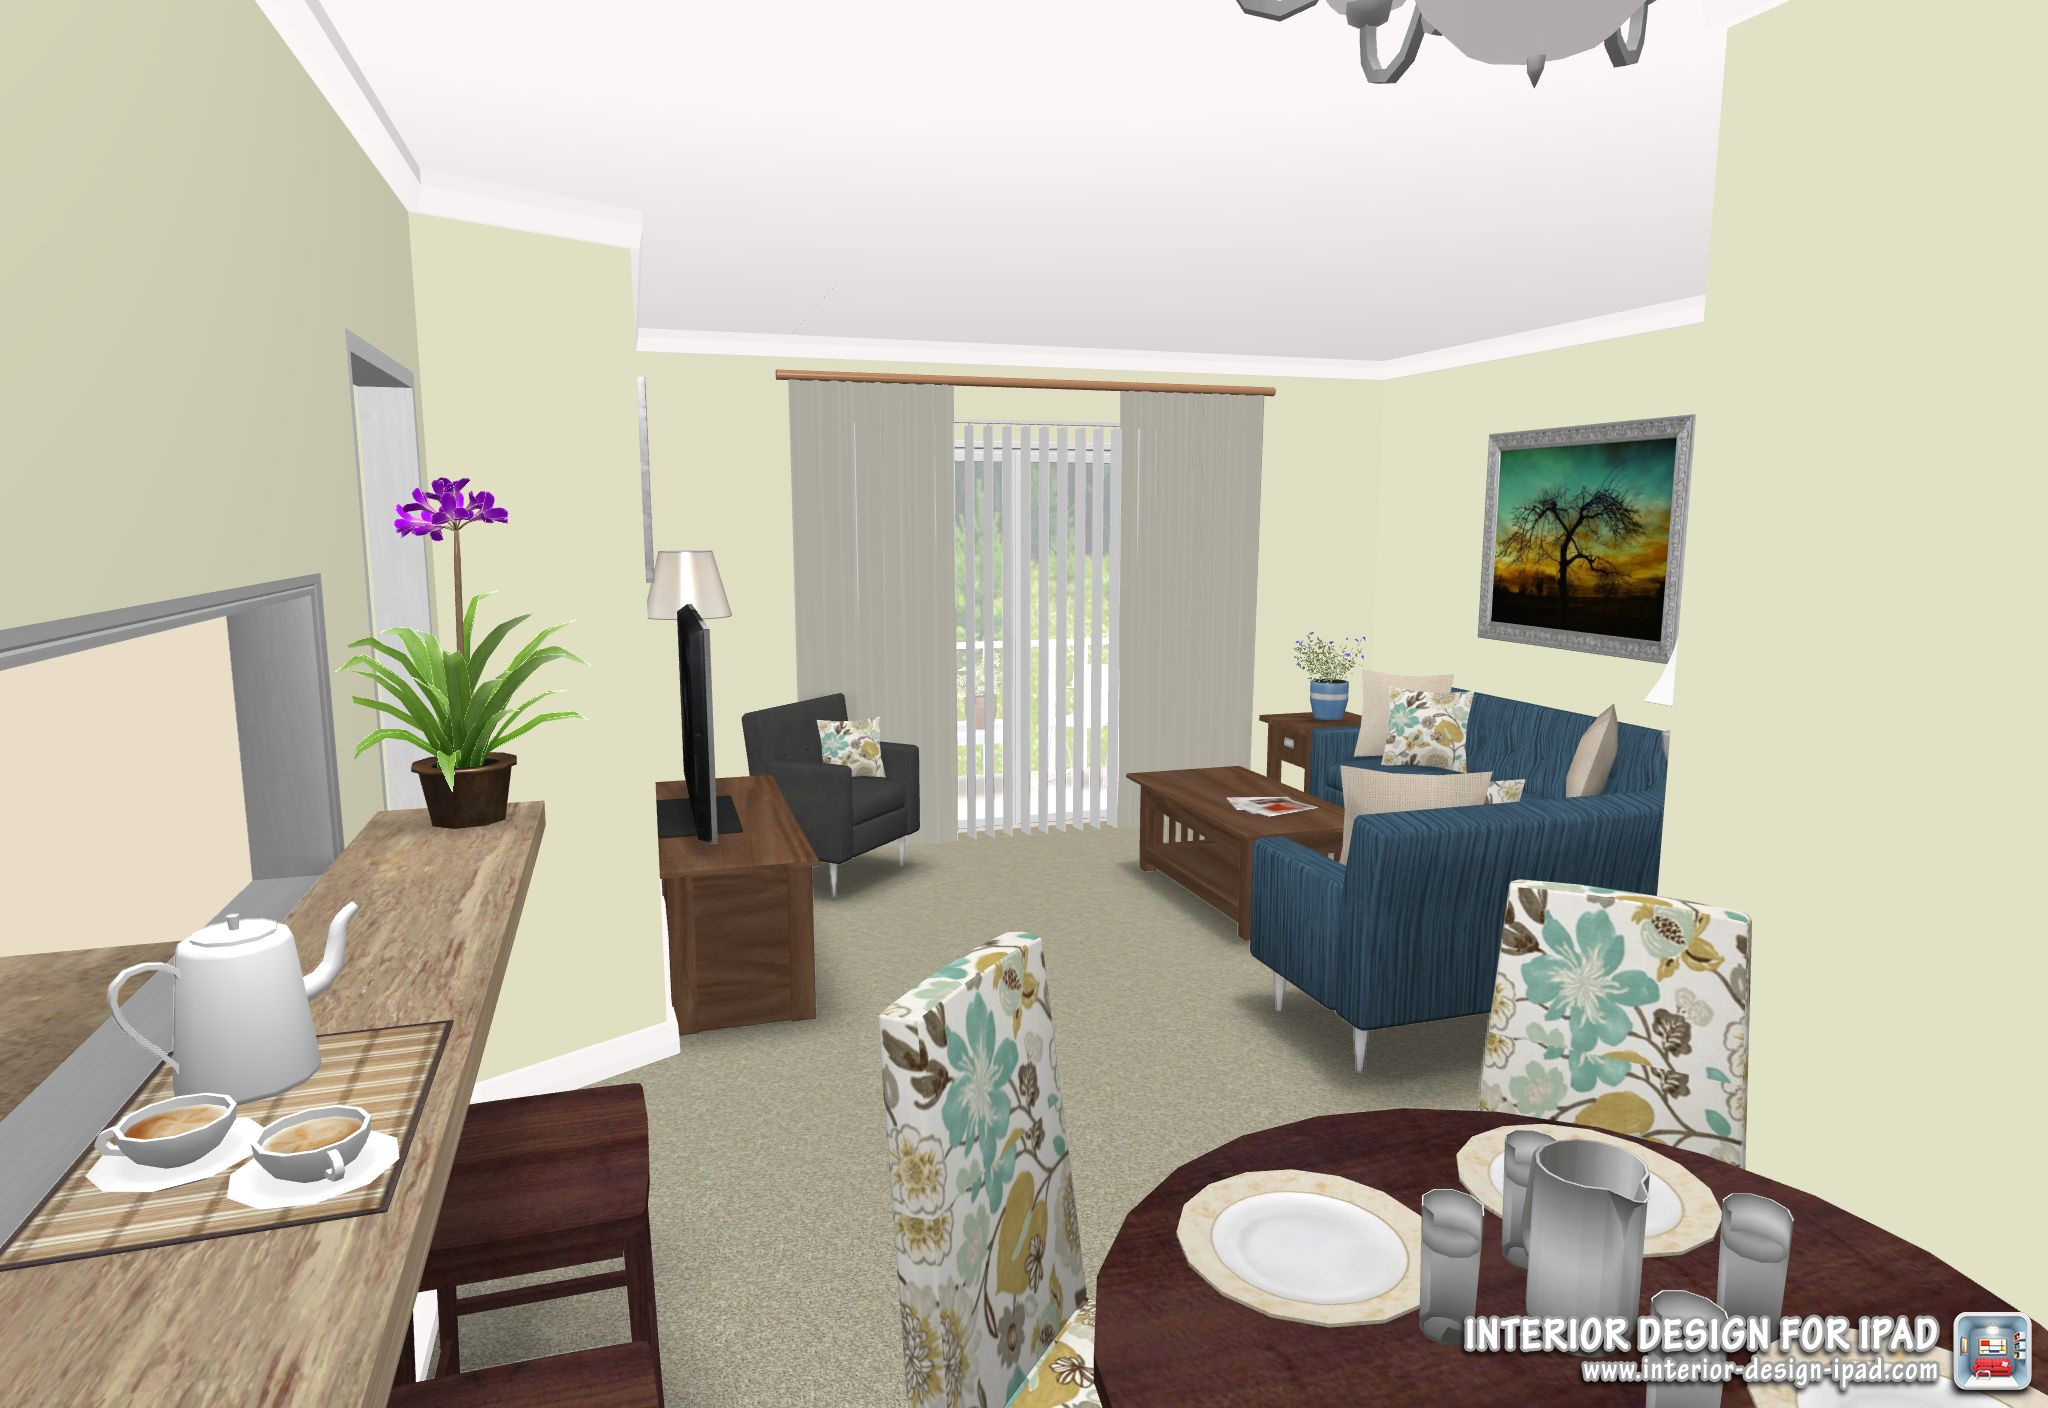 We Shared This Rendering Created With Interior Design For Ipad